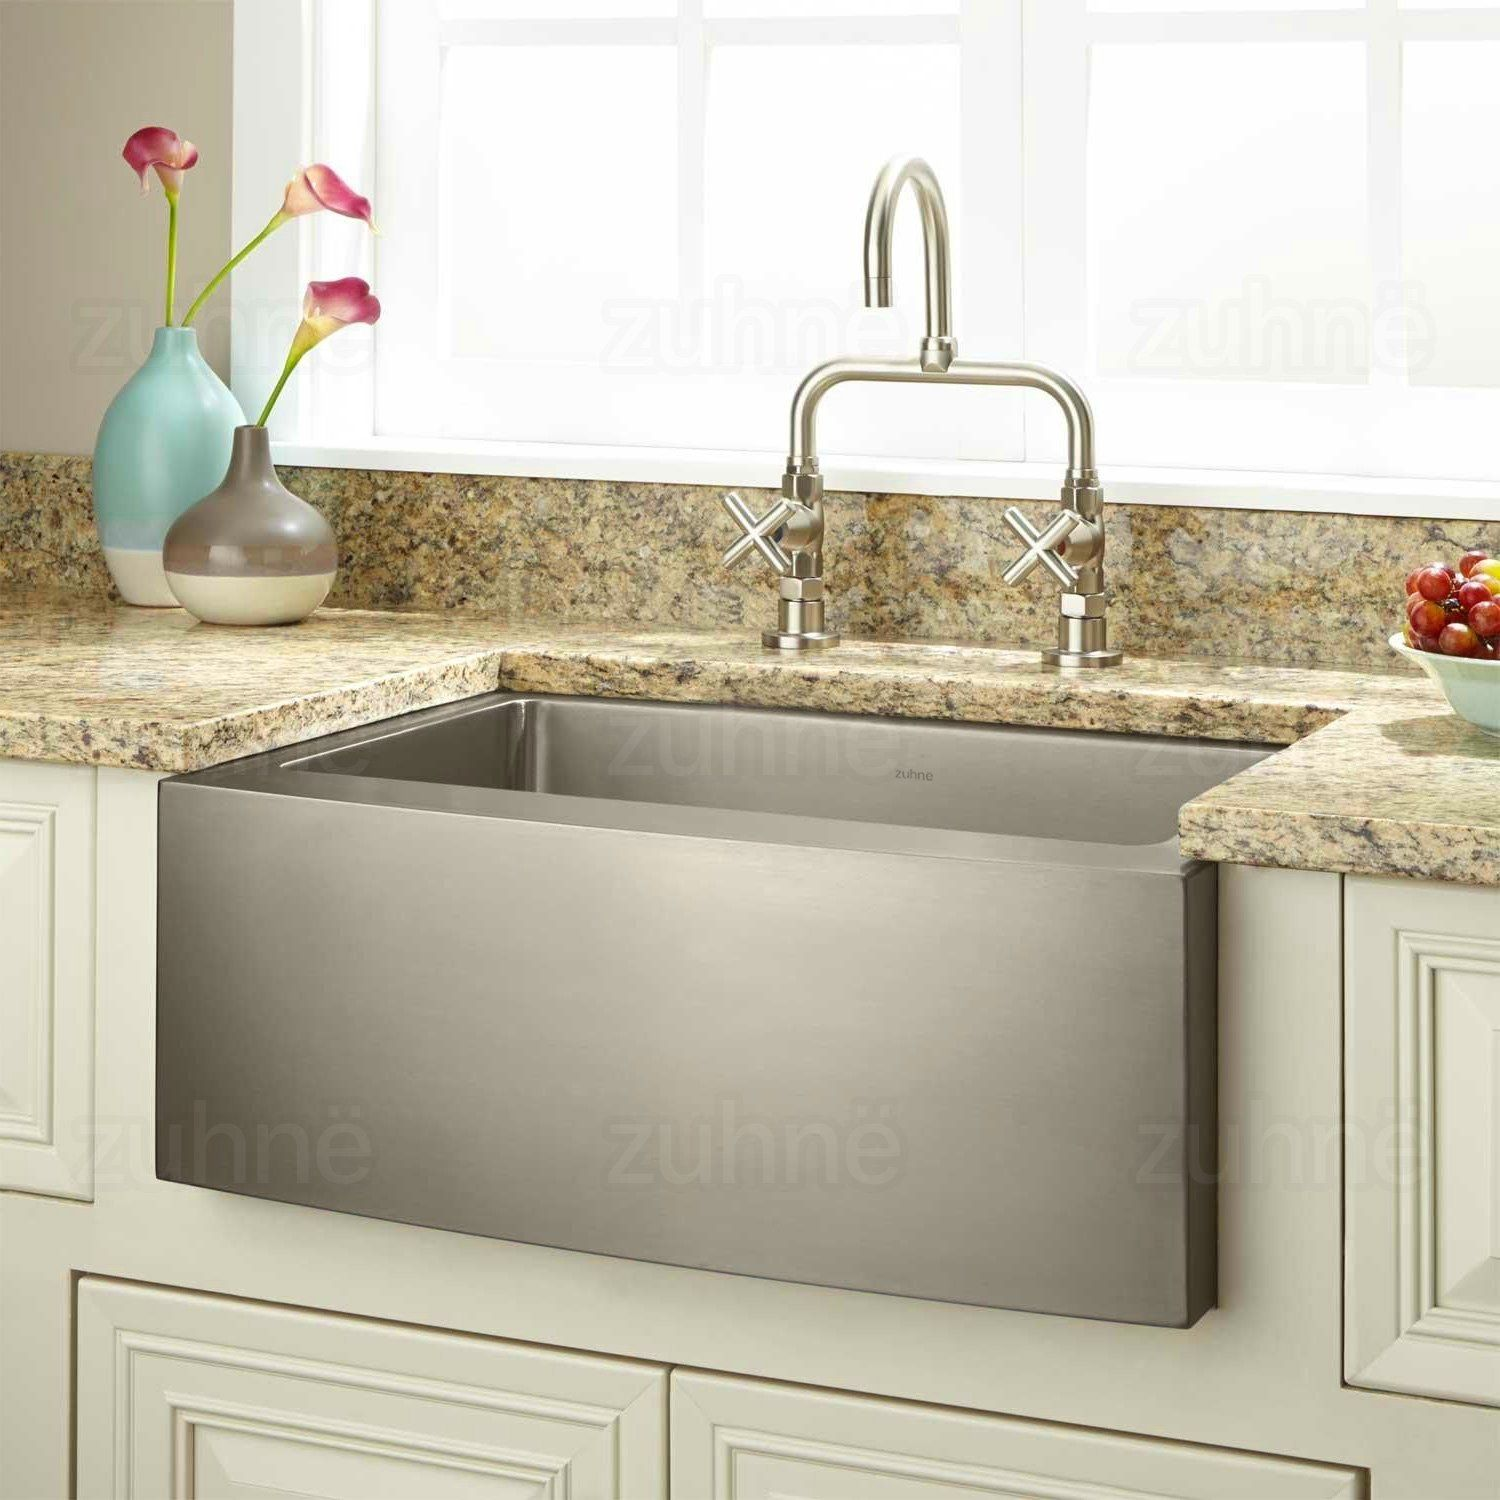 Zuhne 24 Inch Farmhouse Apron Deep Single Bowl 16 Gauge Stainless Steel Luxury Kitchen Sink Am Apron Front Stainless Steel Kitchen Sink Luxury Kitchen Sink